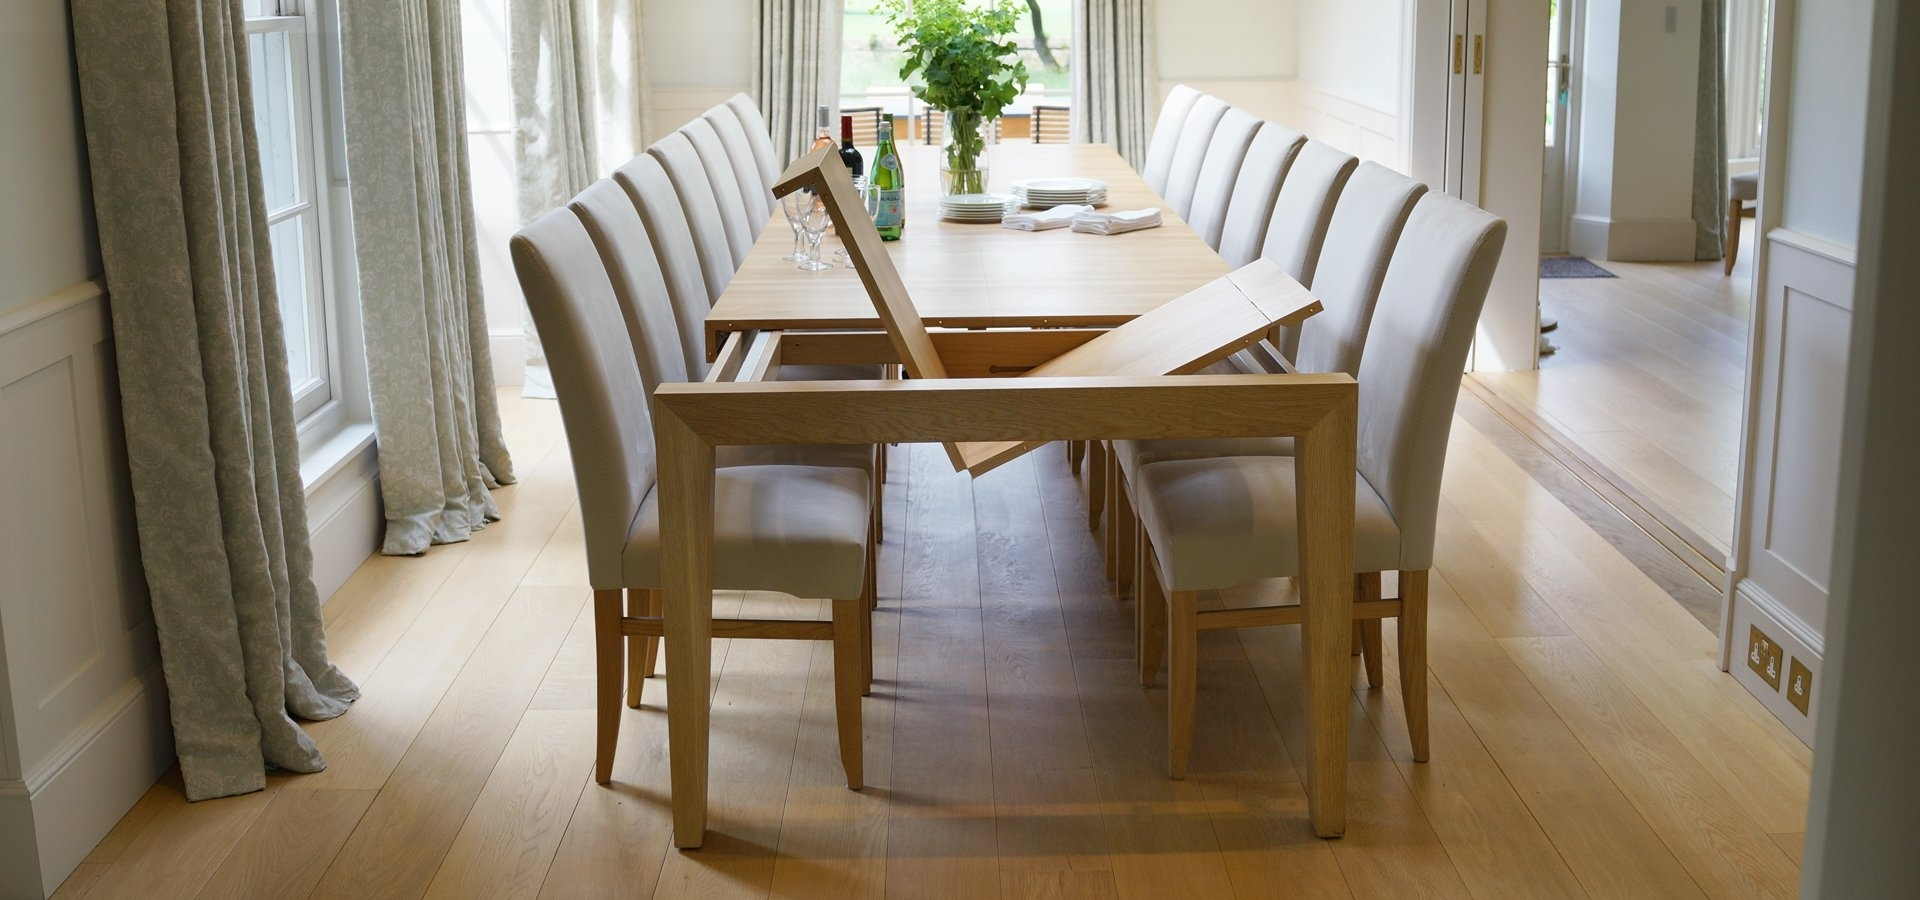 Oak Extending Dining Tables And Chairs Throughout Famous Contemporary Dining Tables & Furnitureberrydesign (View 14 of 25)